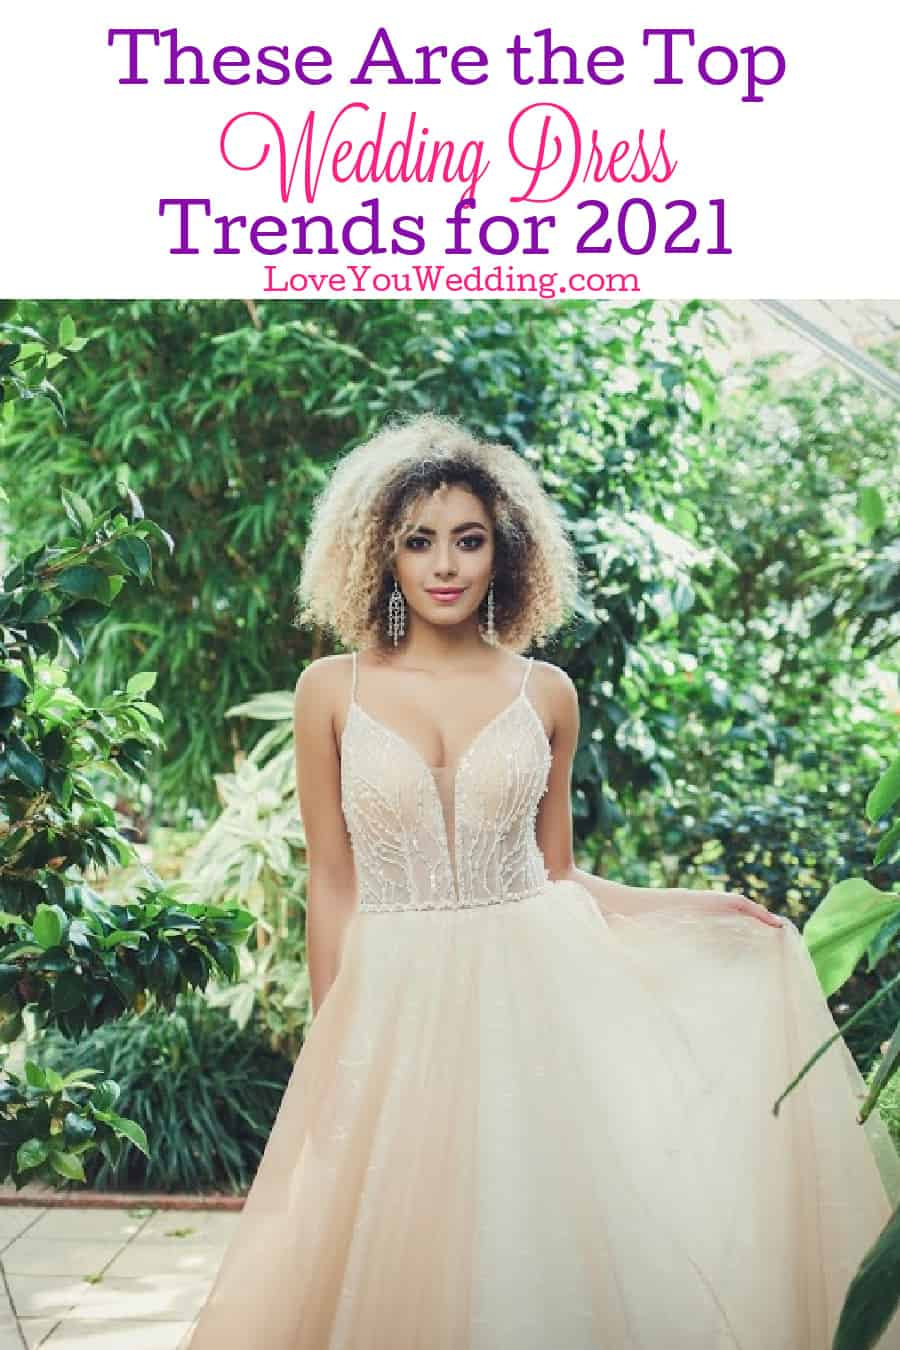 Curious about the top 2021 wedding dress trends? From vintage ruffles to simple yet elegant, these are the gowns every bride wants this year!